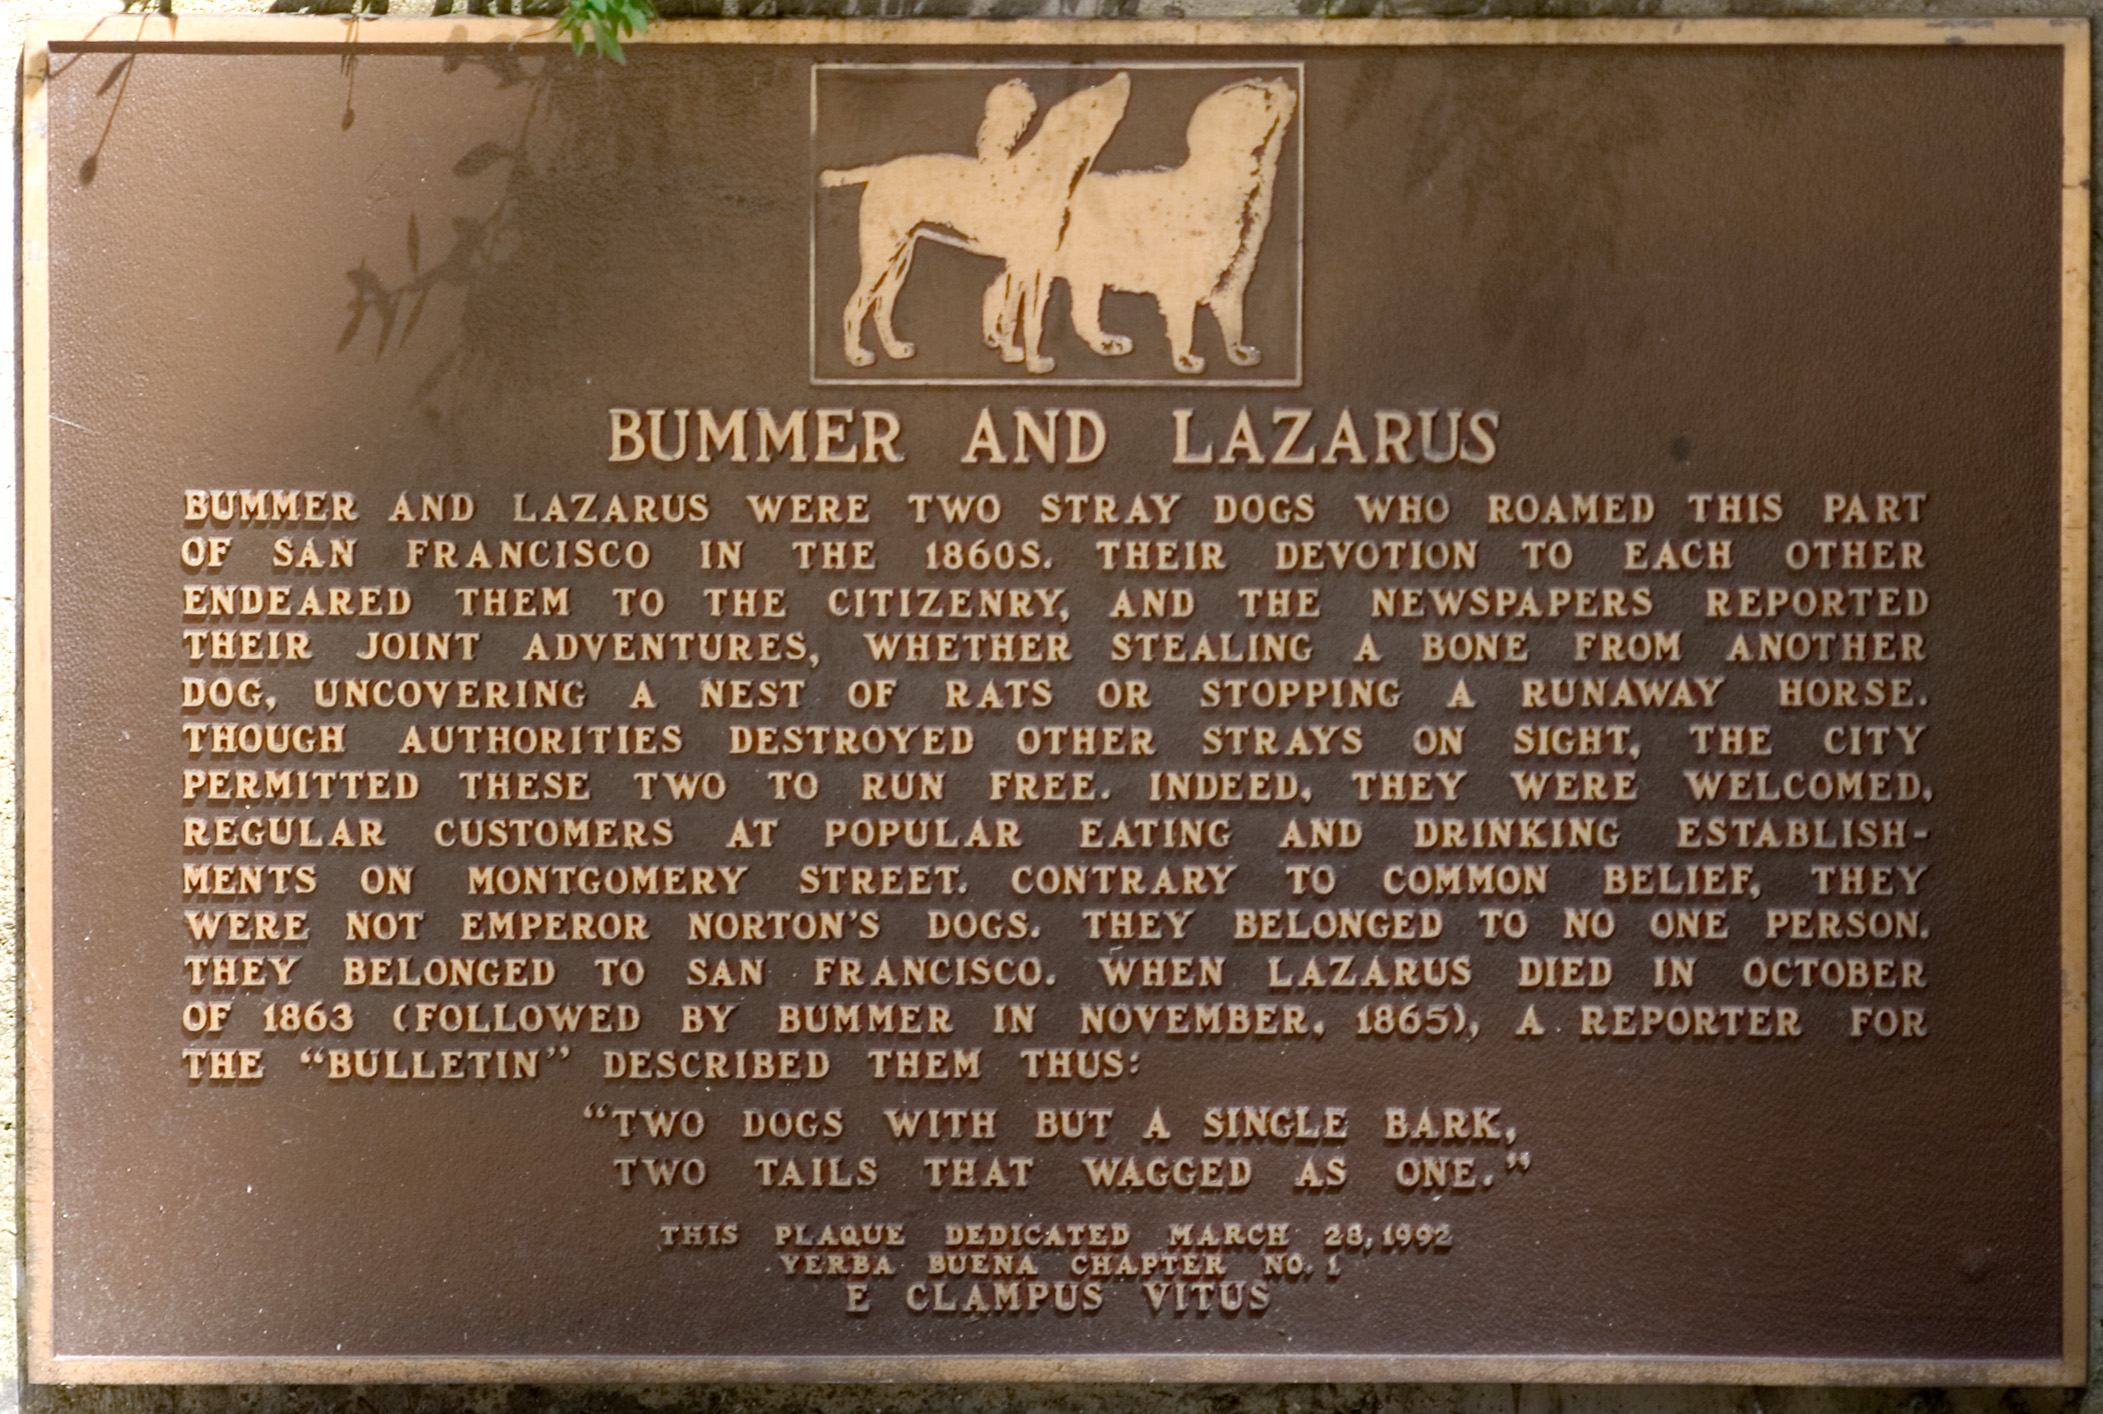 famous stray dogs bummer and lazarus